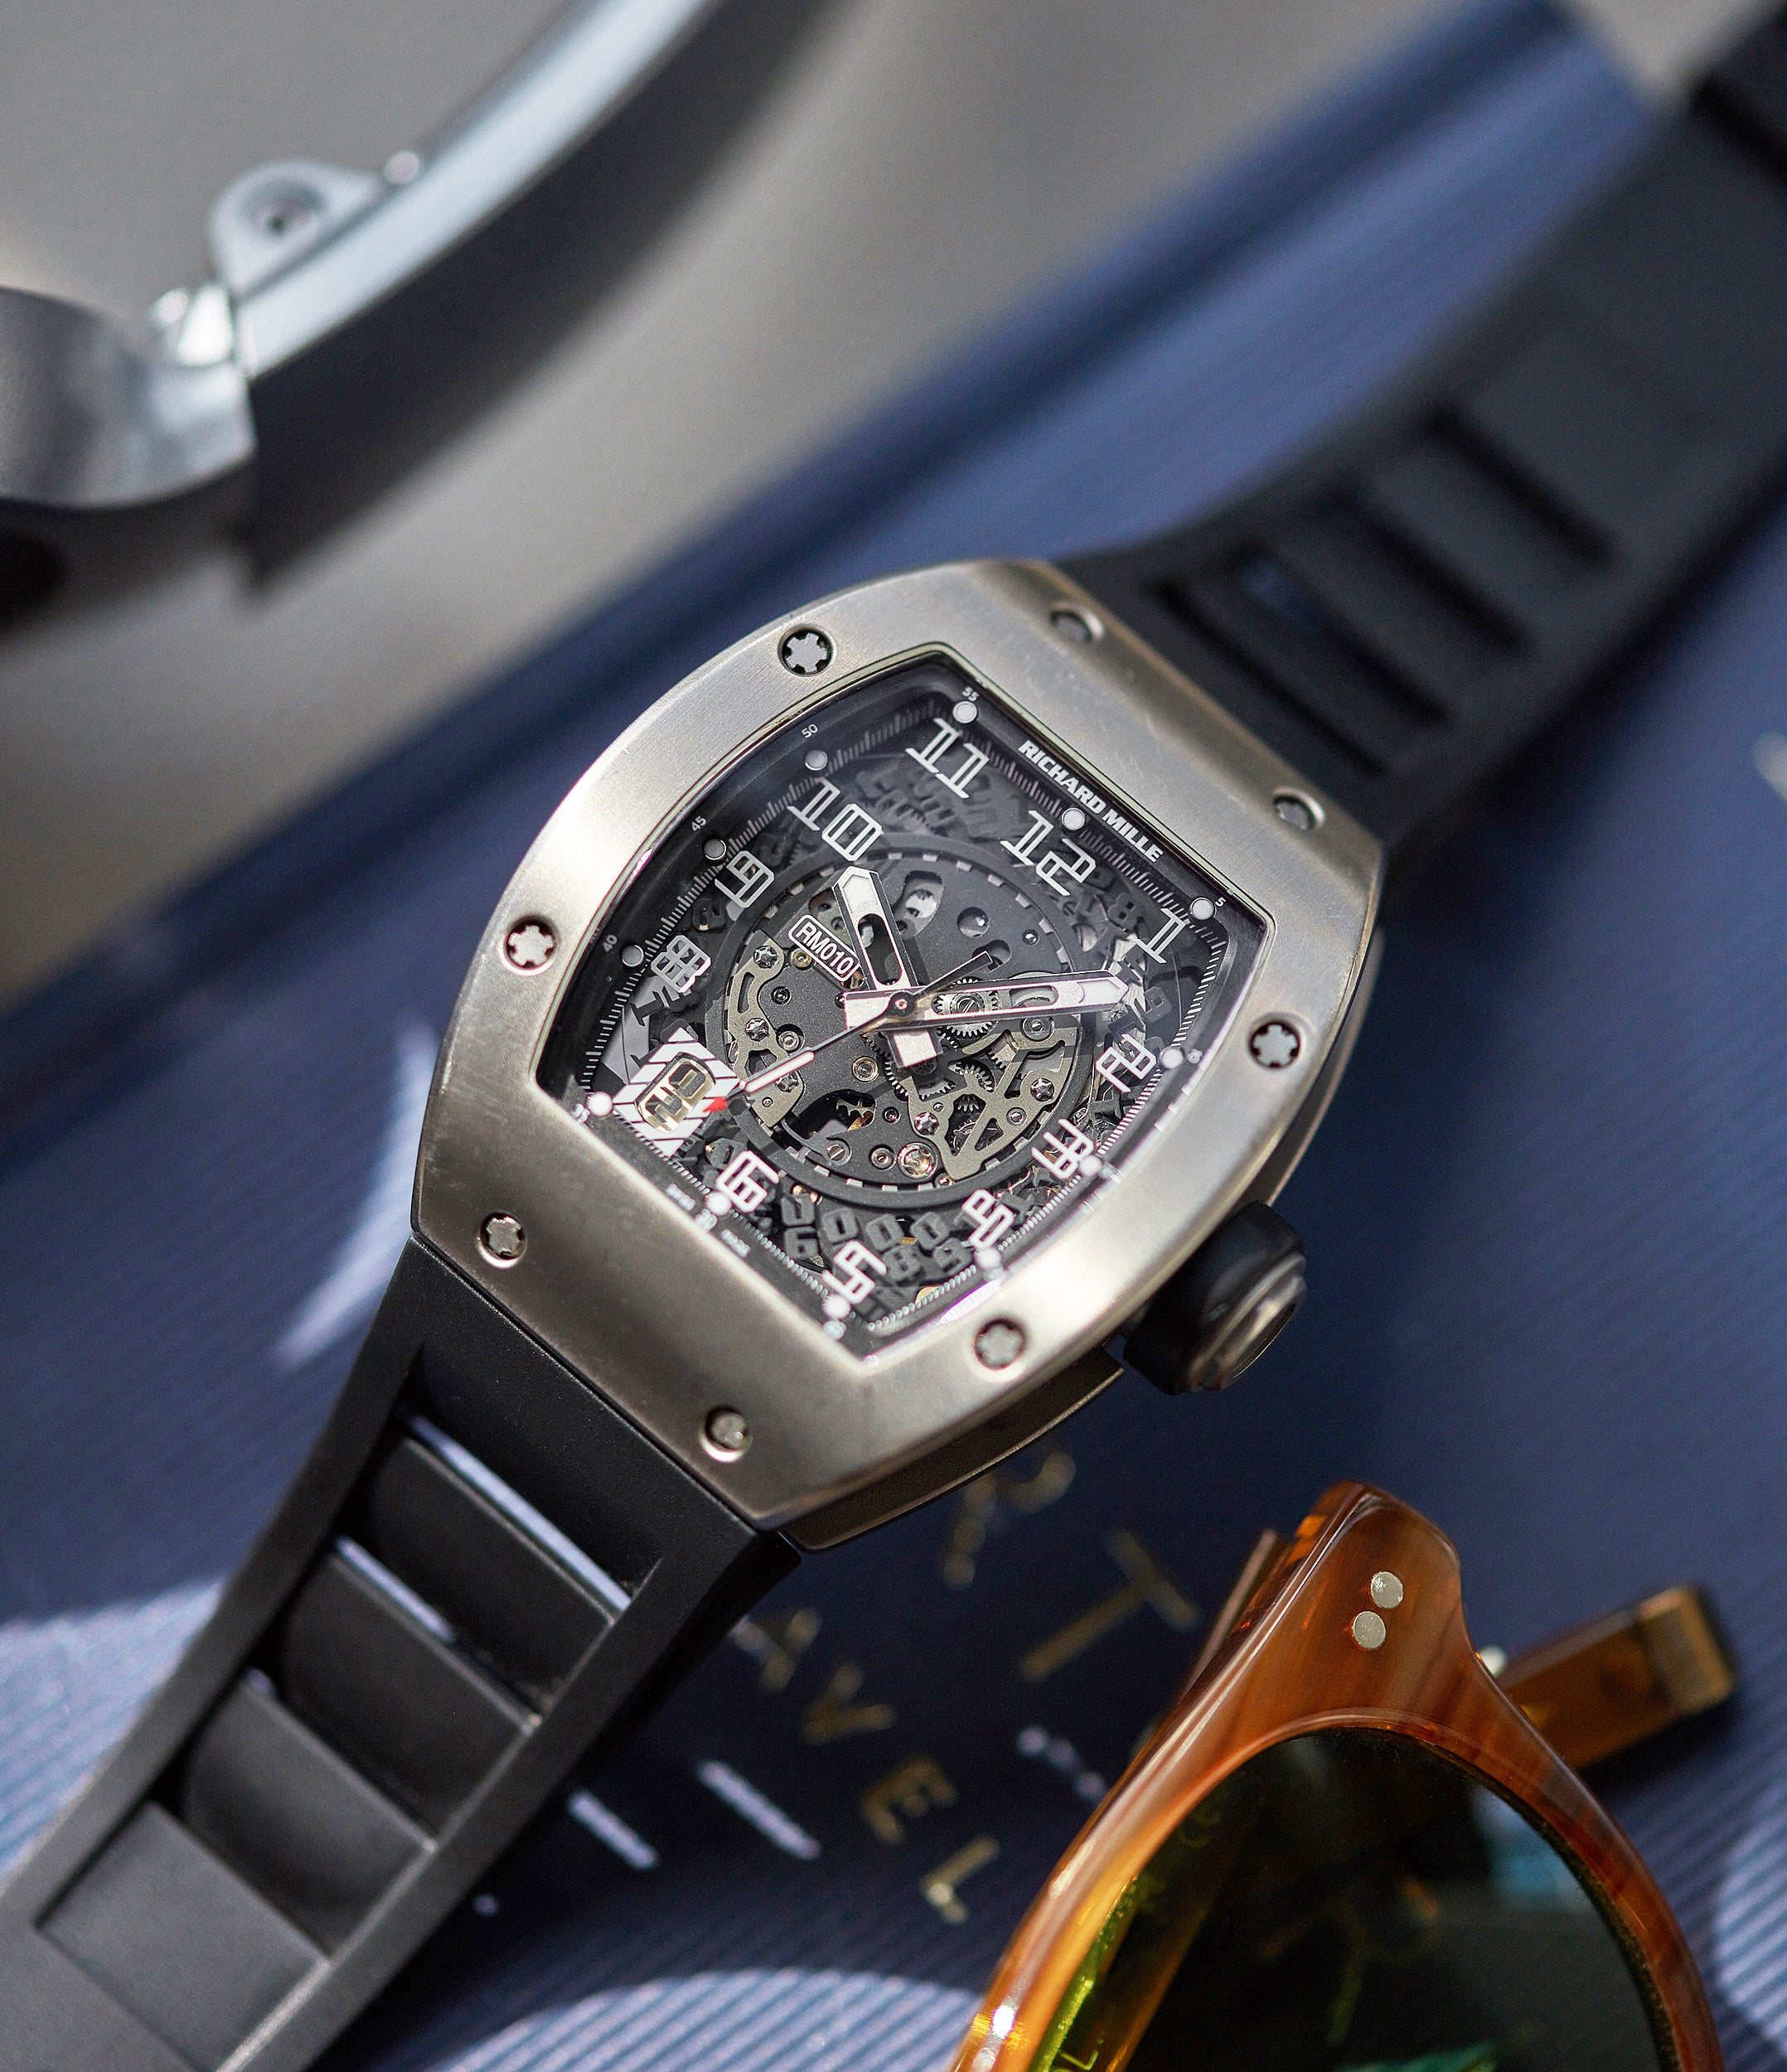 shop pre-owned Richard Mille RM 010TI titanium men's sports luxury wristwatch for sale online A Collected Man London UK specialist rare independent watchmakers